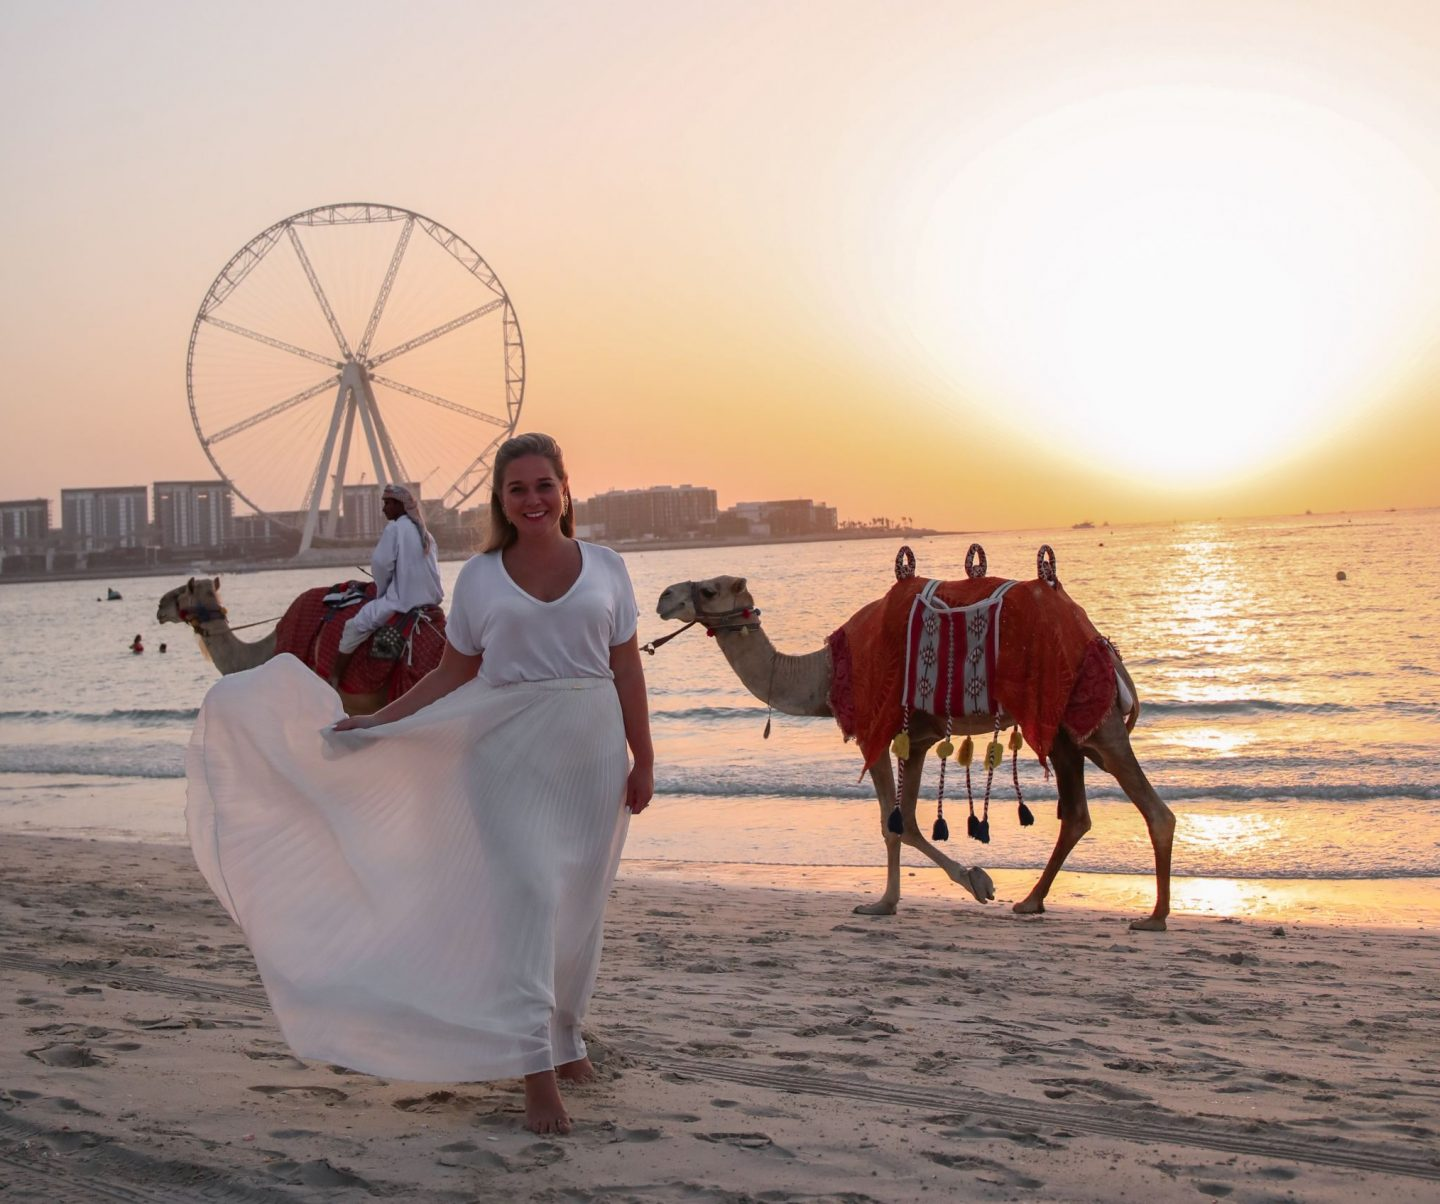 Dubai – What to see, eat and do!